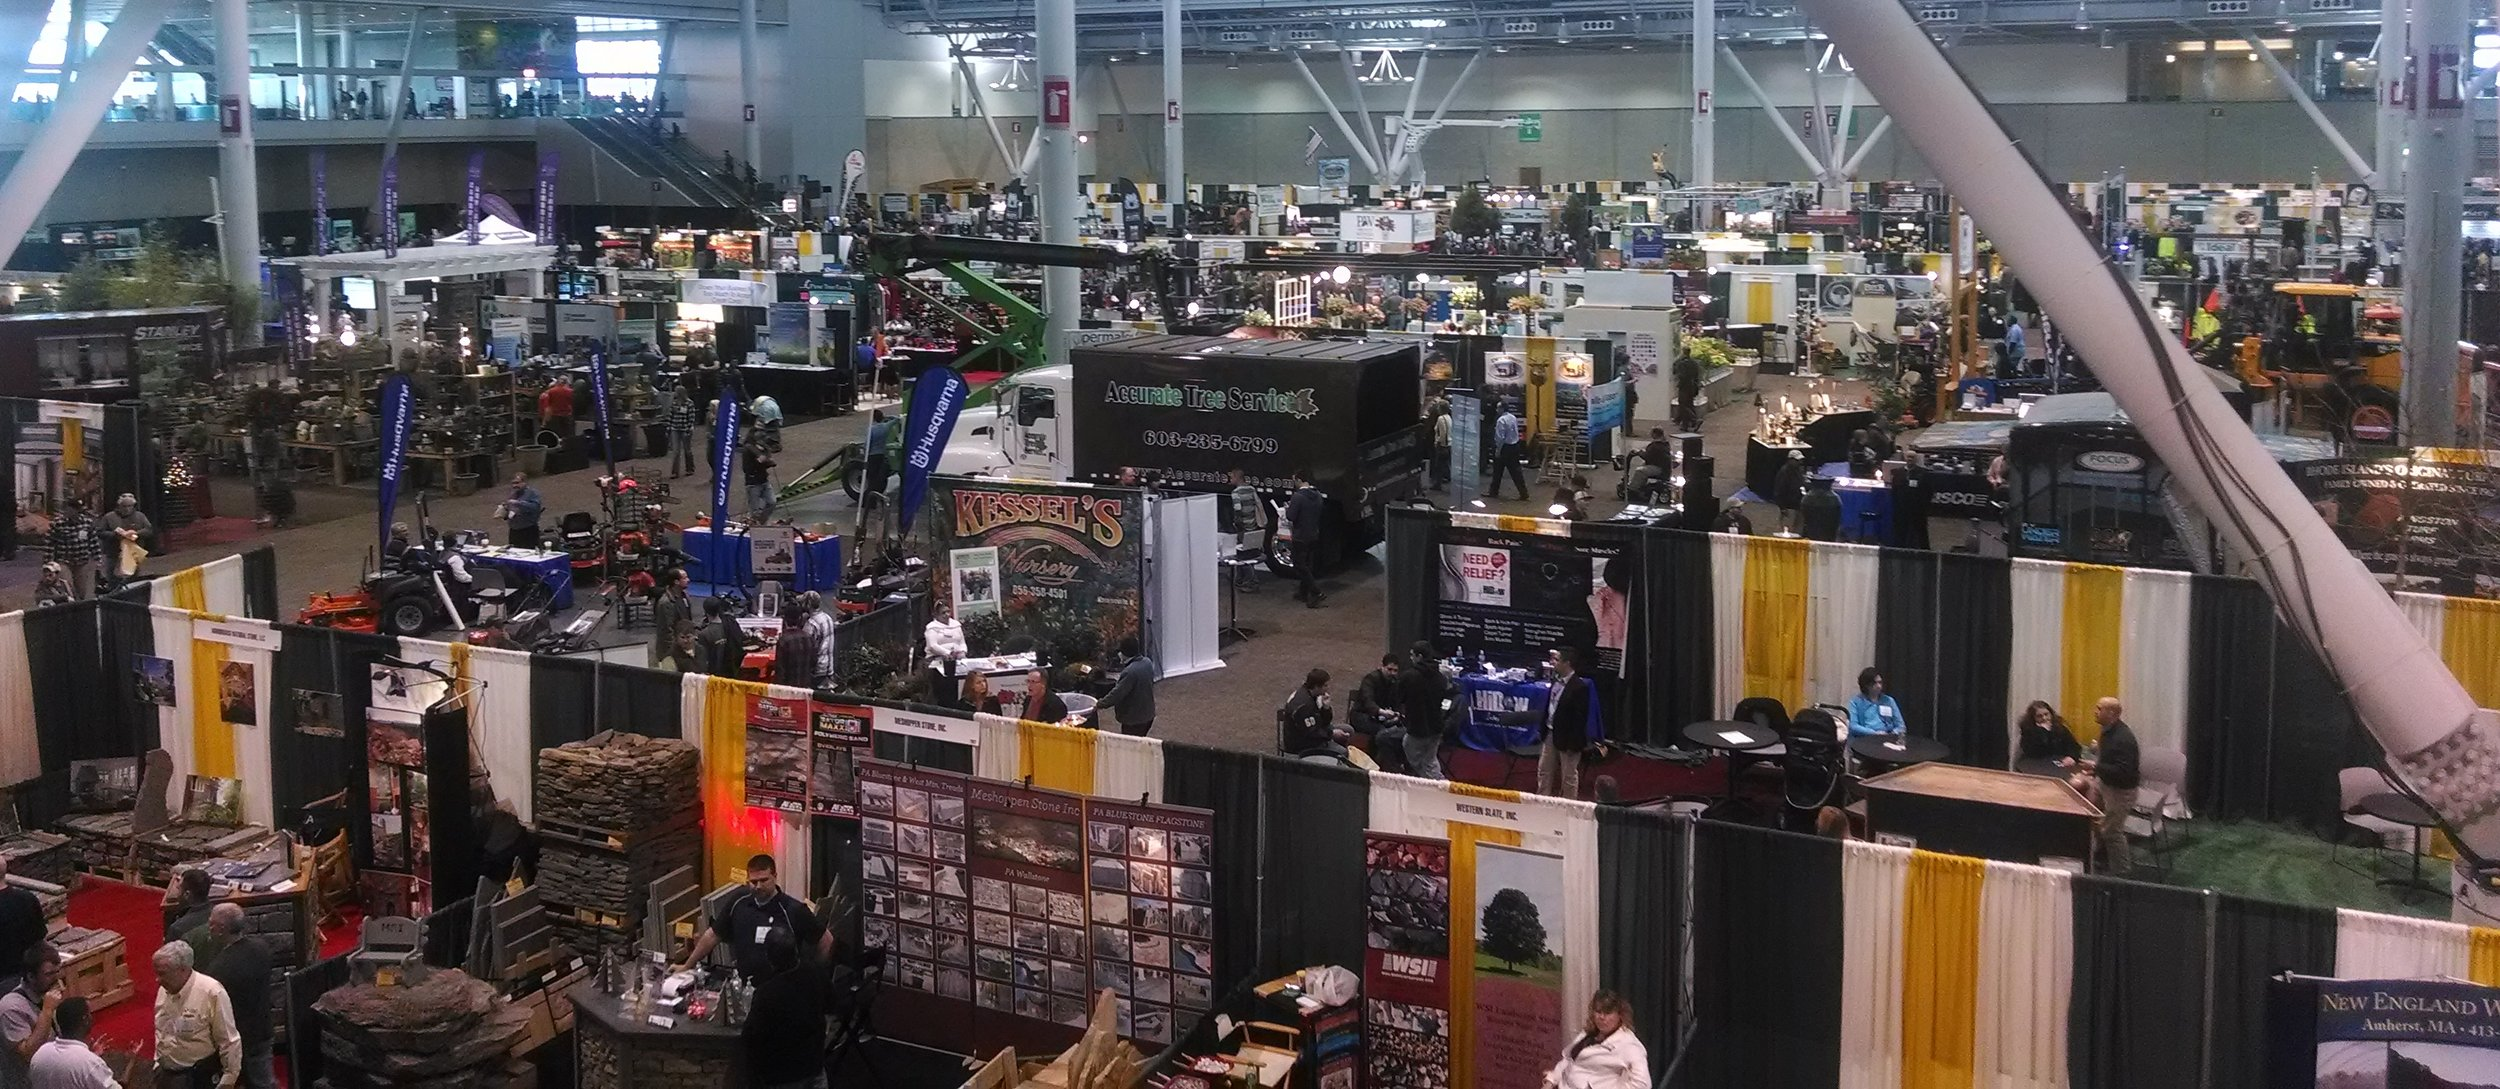 New England Grows attracts over 13,000 green industry professionals and nearly 1400 vendors showcasing cutting-edge research, products and services.